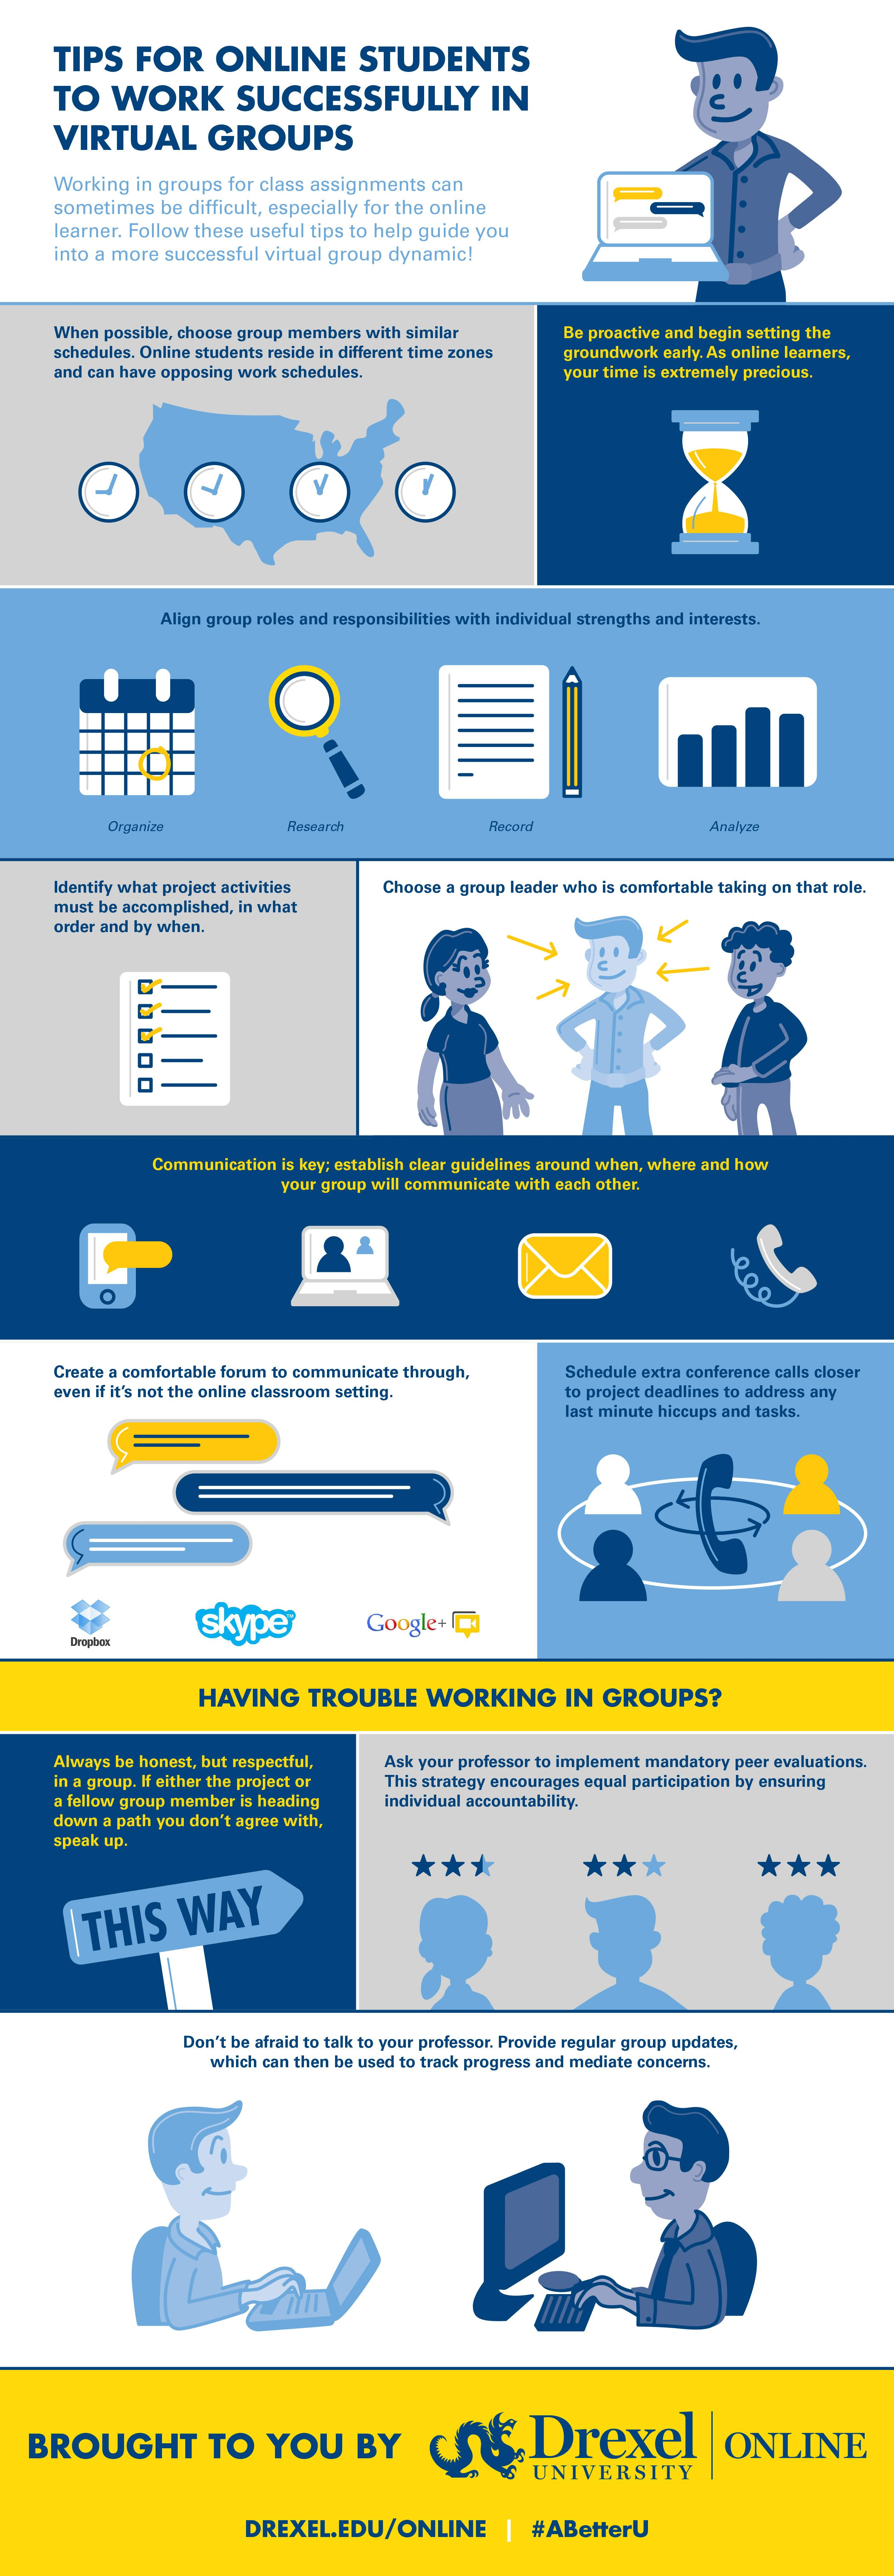 Full infographic on tips for participating in group work and projects online created by Drexel University Online